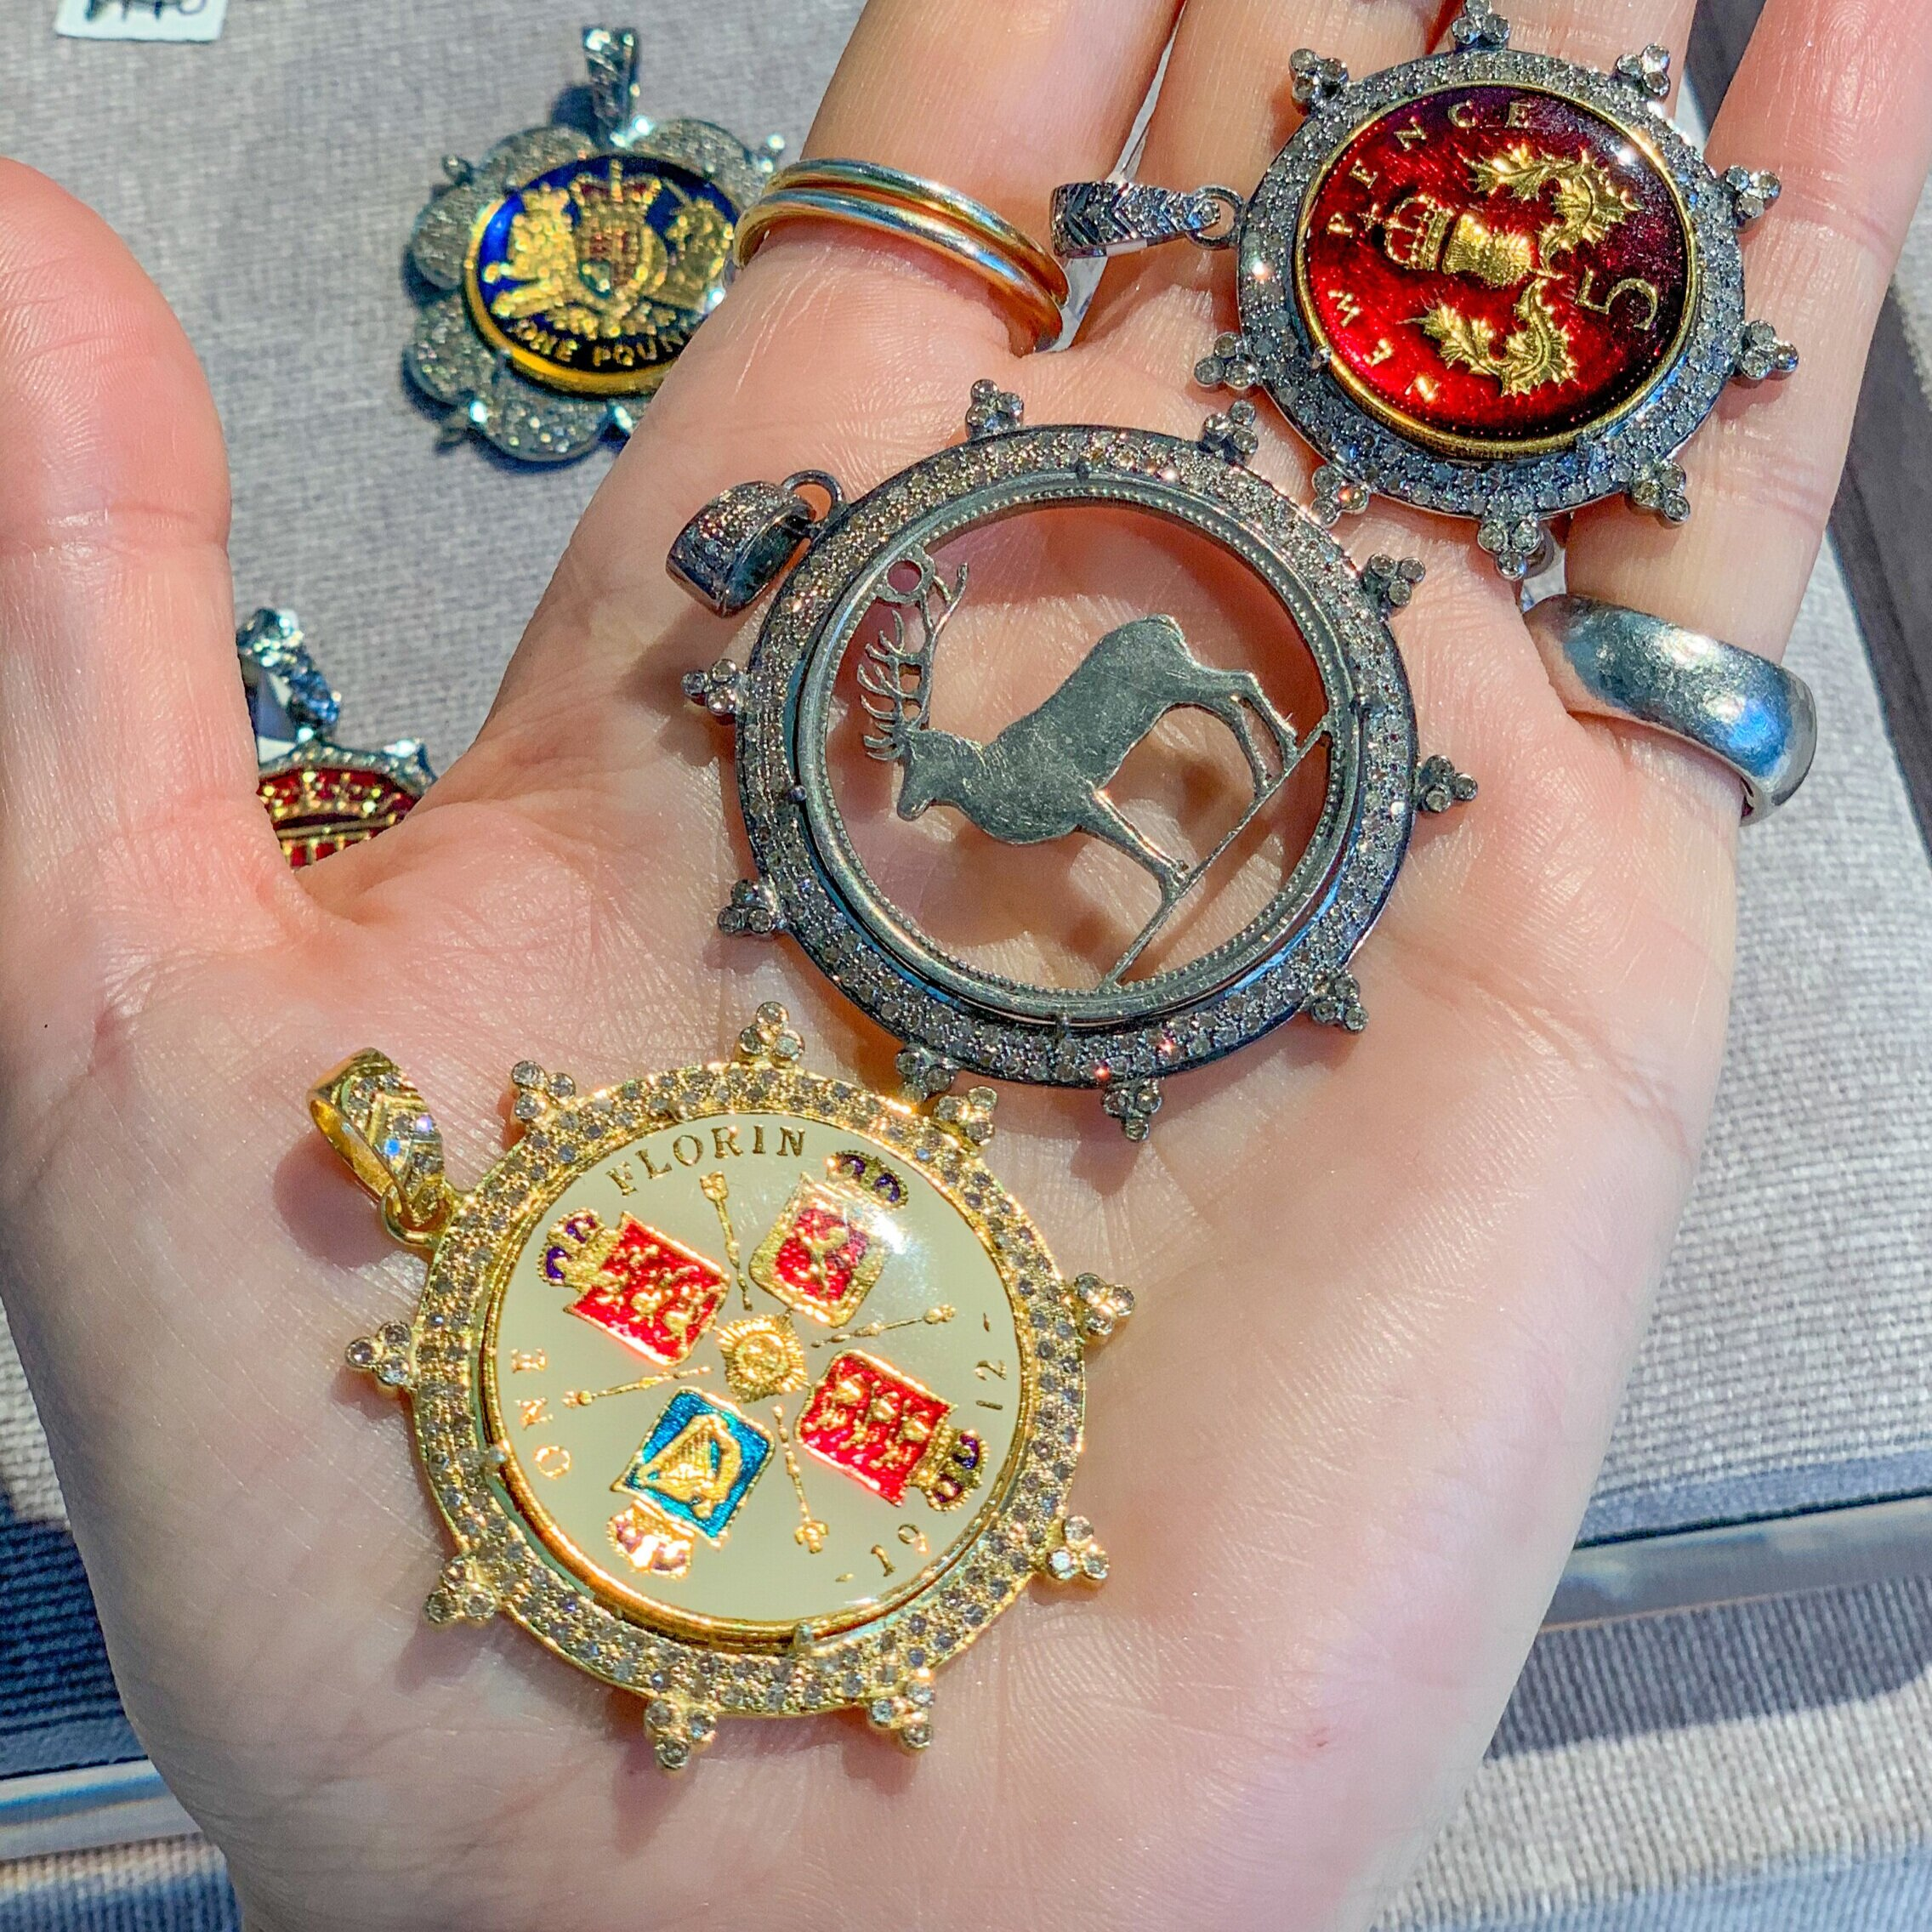 Kara's happy jewelry: Her vintage coin pendants